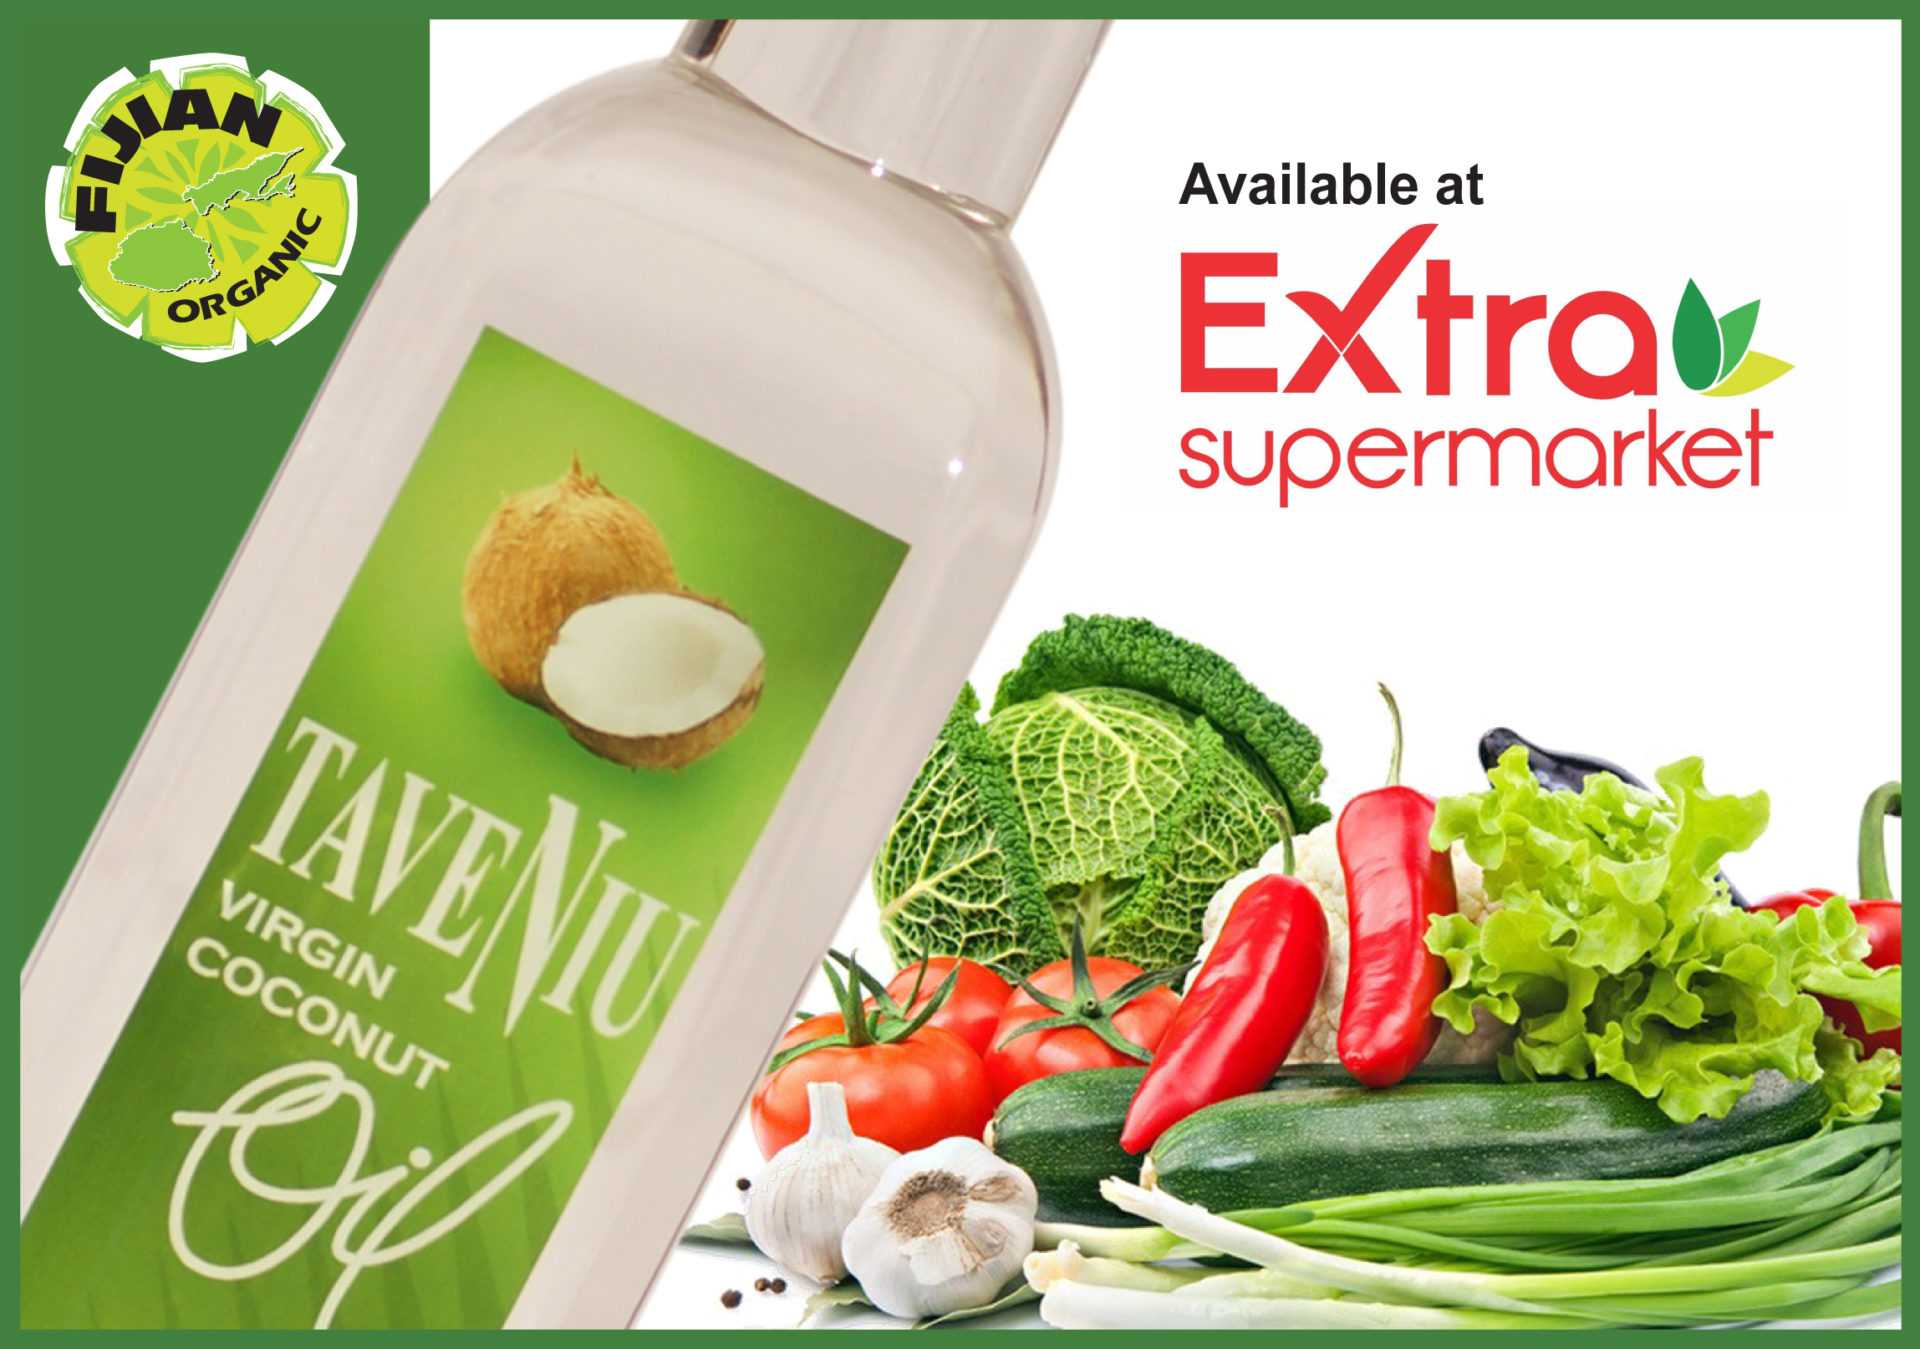 TaveNiu Virgin Coconut Oil available at Extra Supermarket